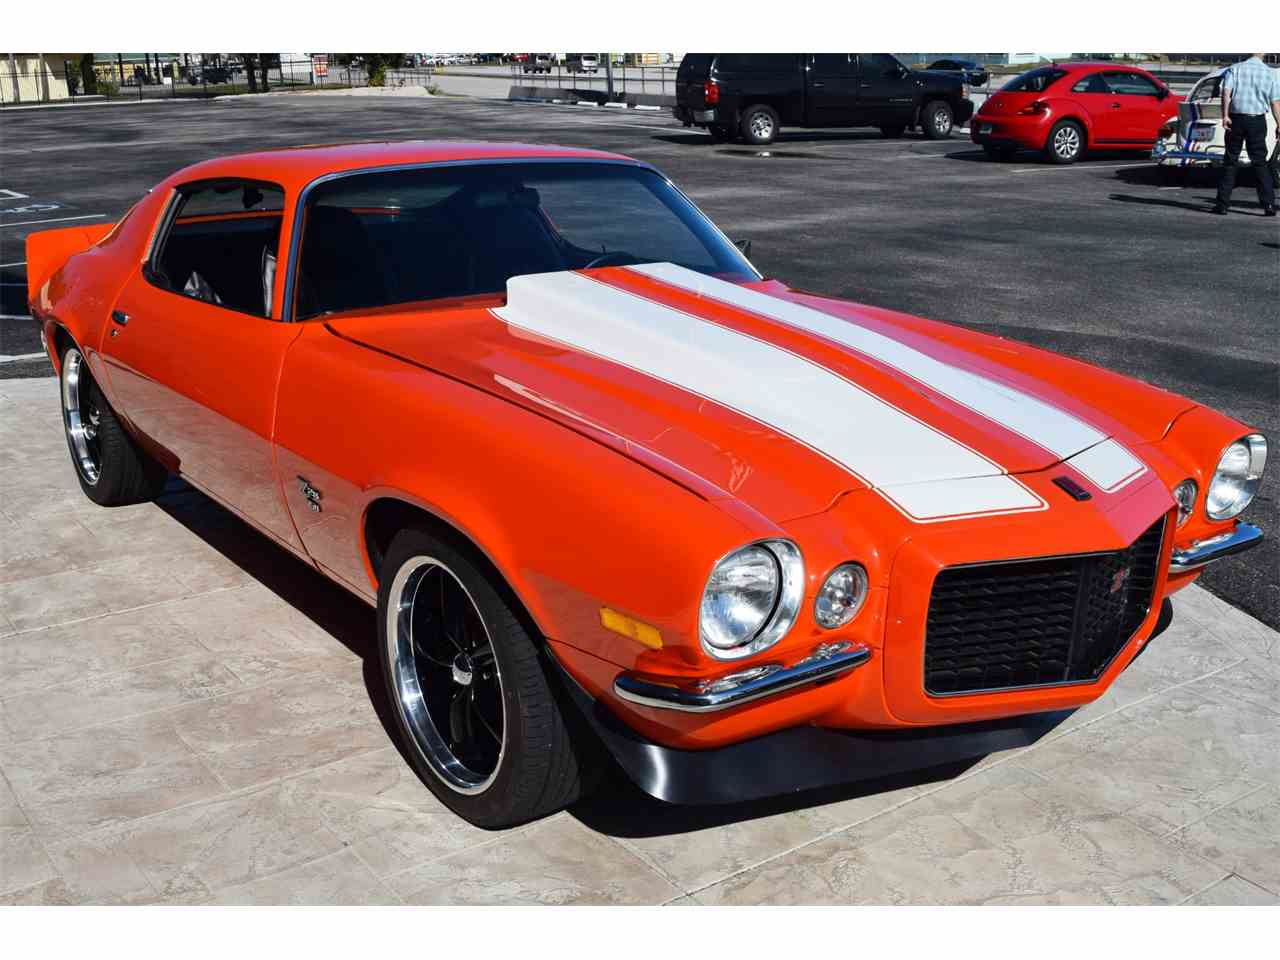 Large Picture of Classic 1973 Chevrolet Camaro located in Florida Offered by Ideal Classic Cars - LEQE